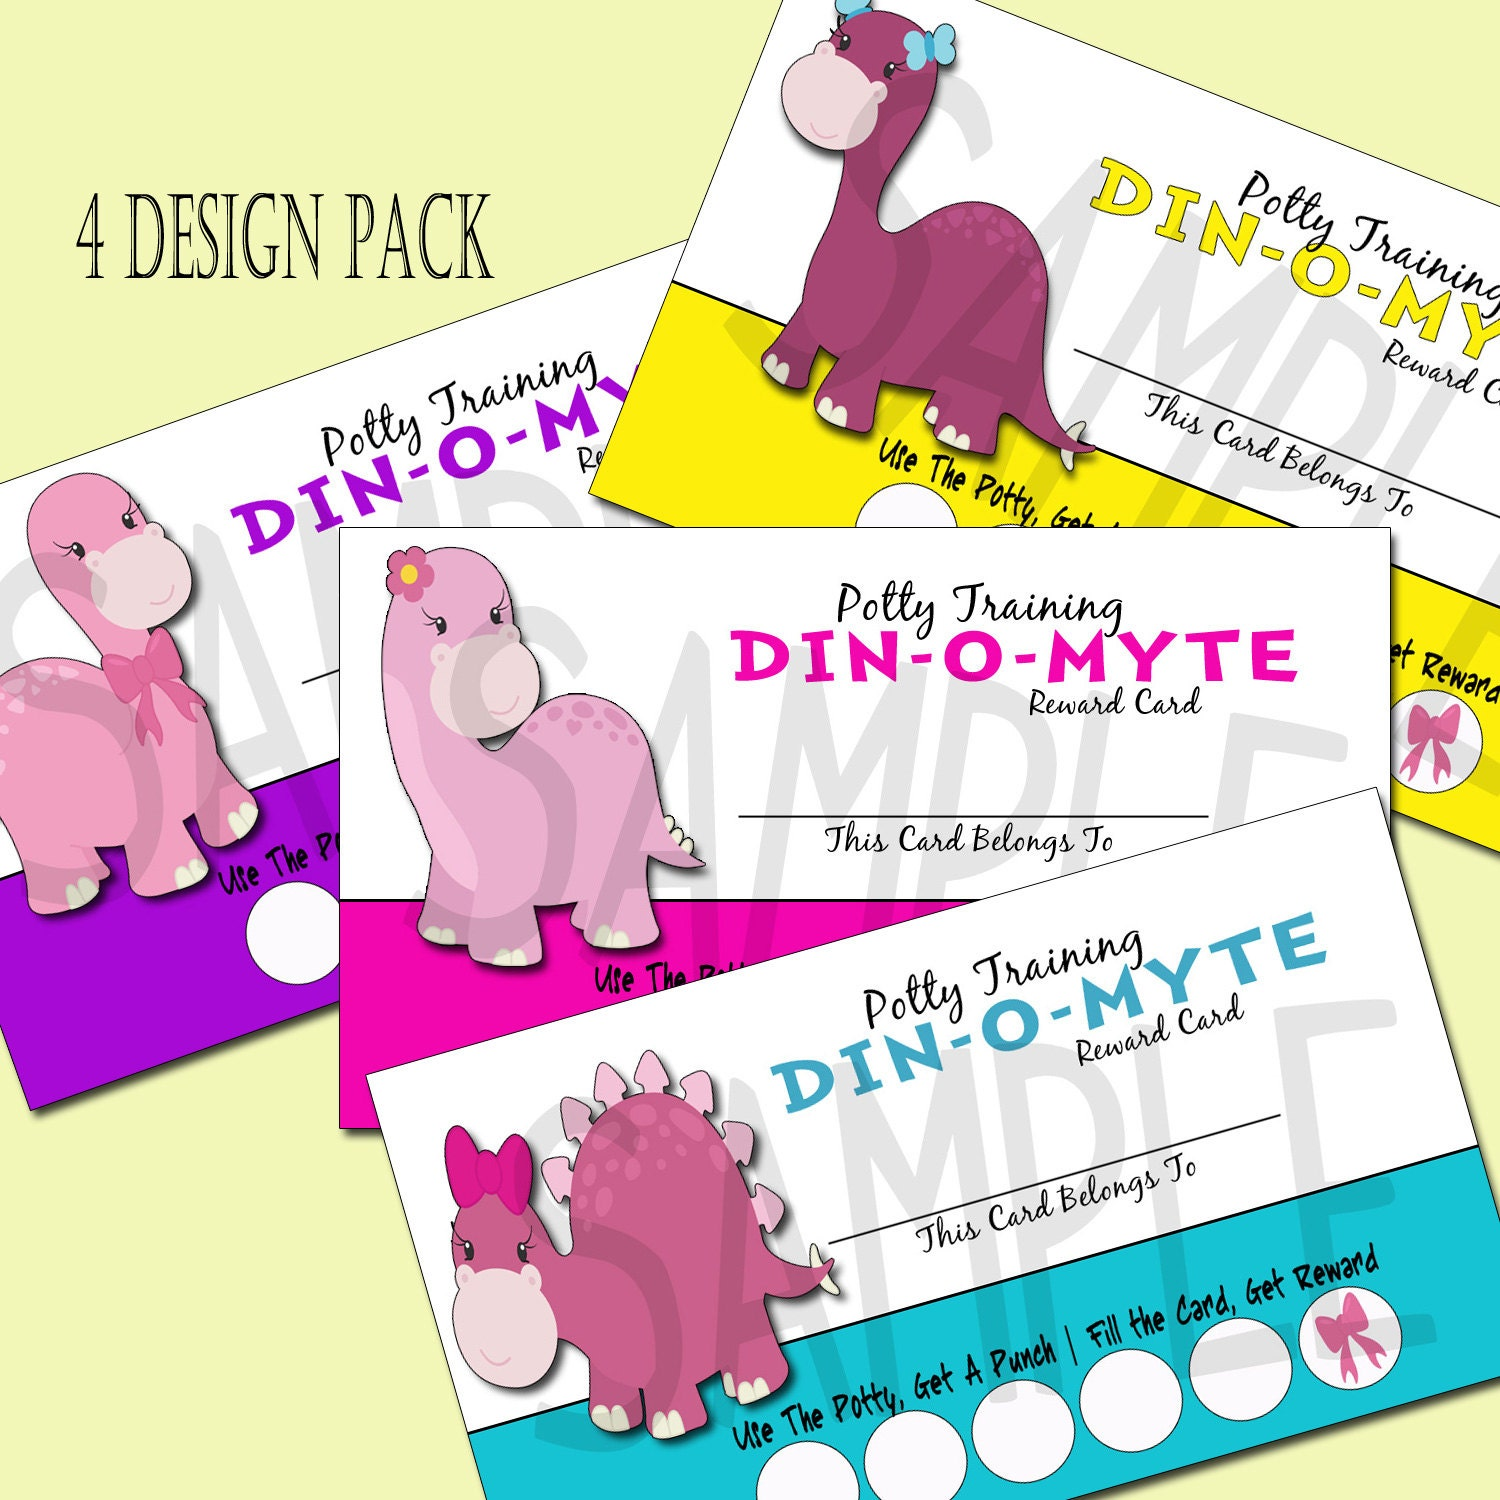 diy potty chart instant printable chore punch card potty punch card incentive program dinosaurs bows girls pink rawr potty training